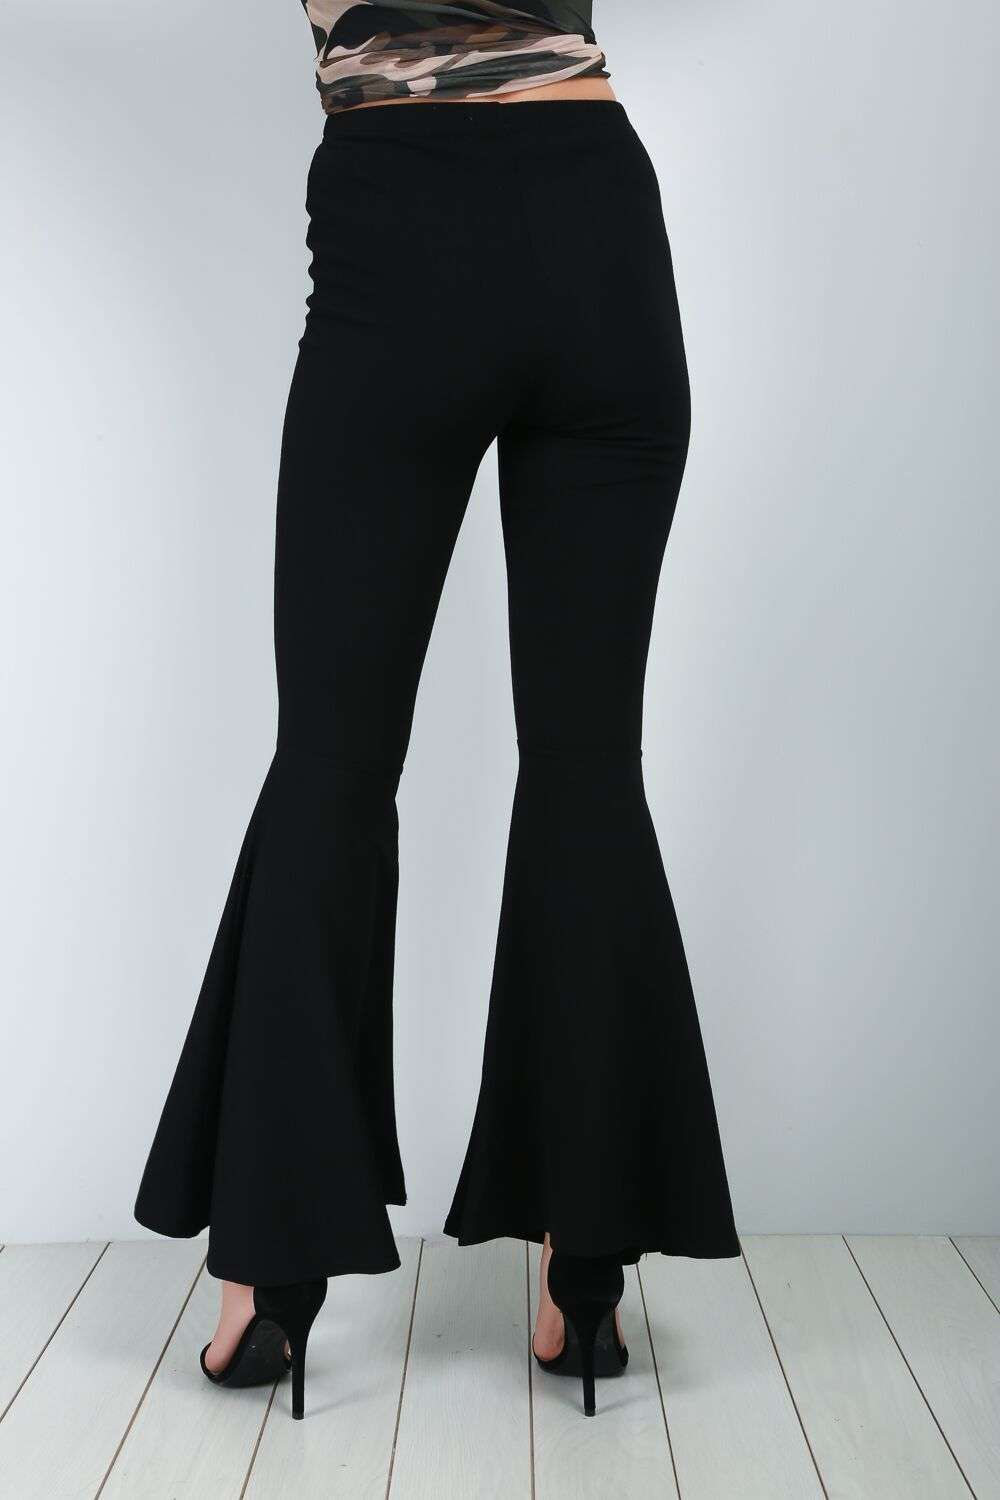 Freya High Waisted Black Flare Leg Trousers - bejealous-com